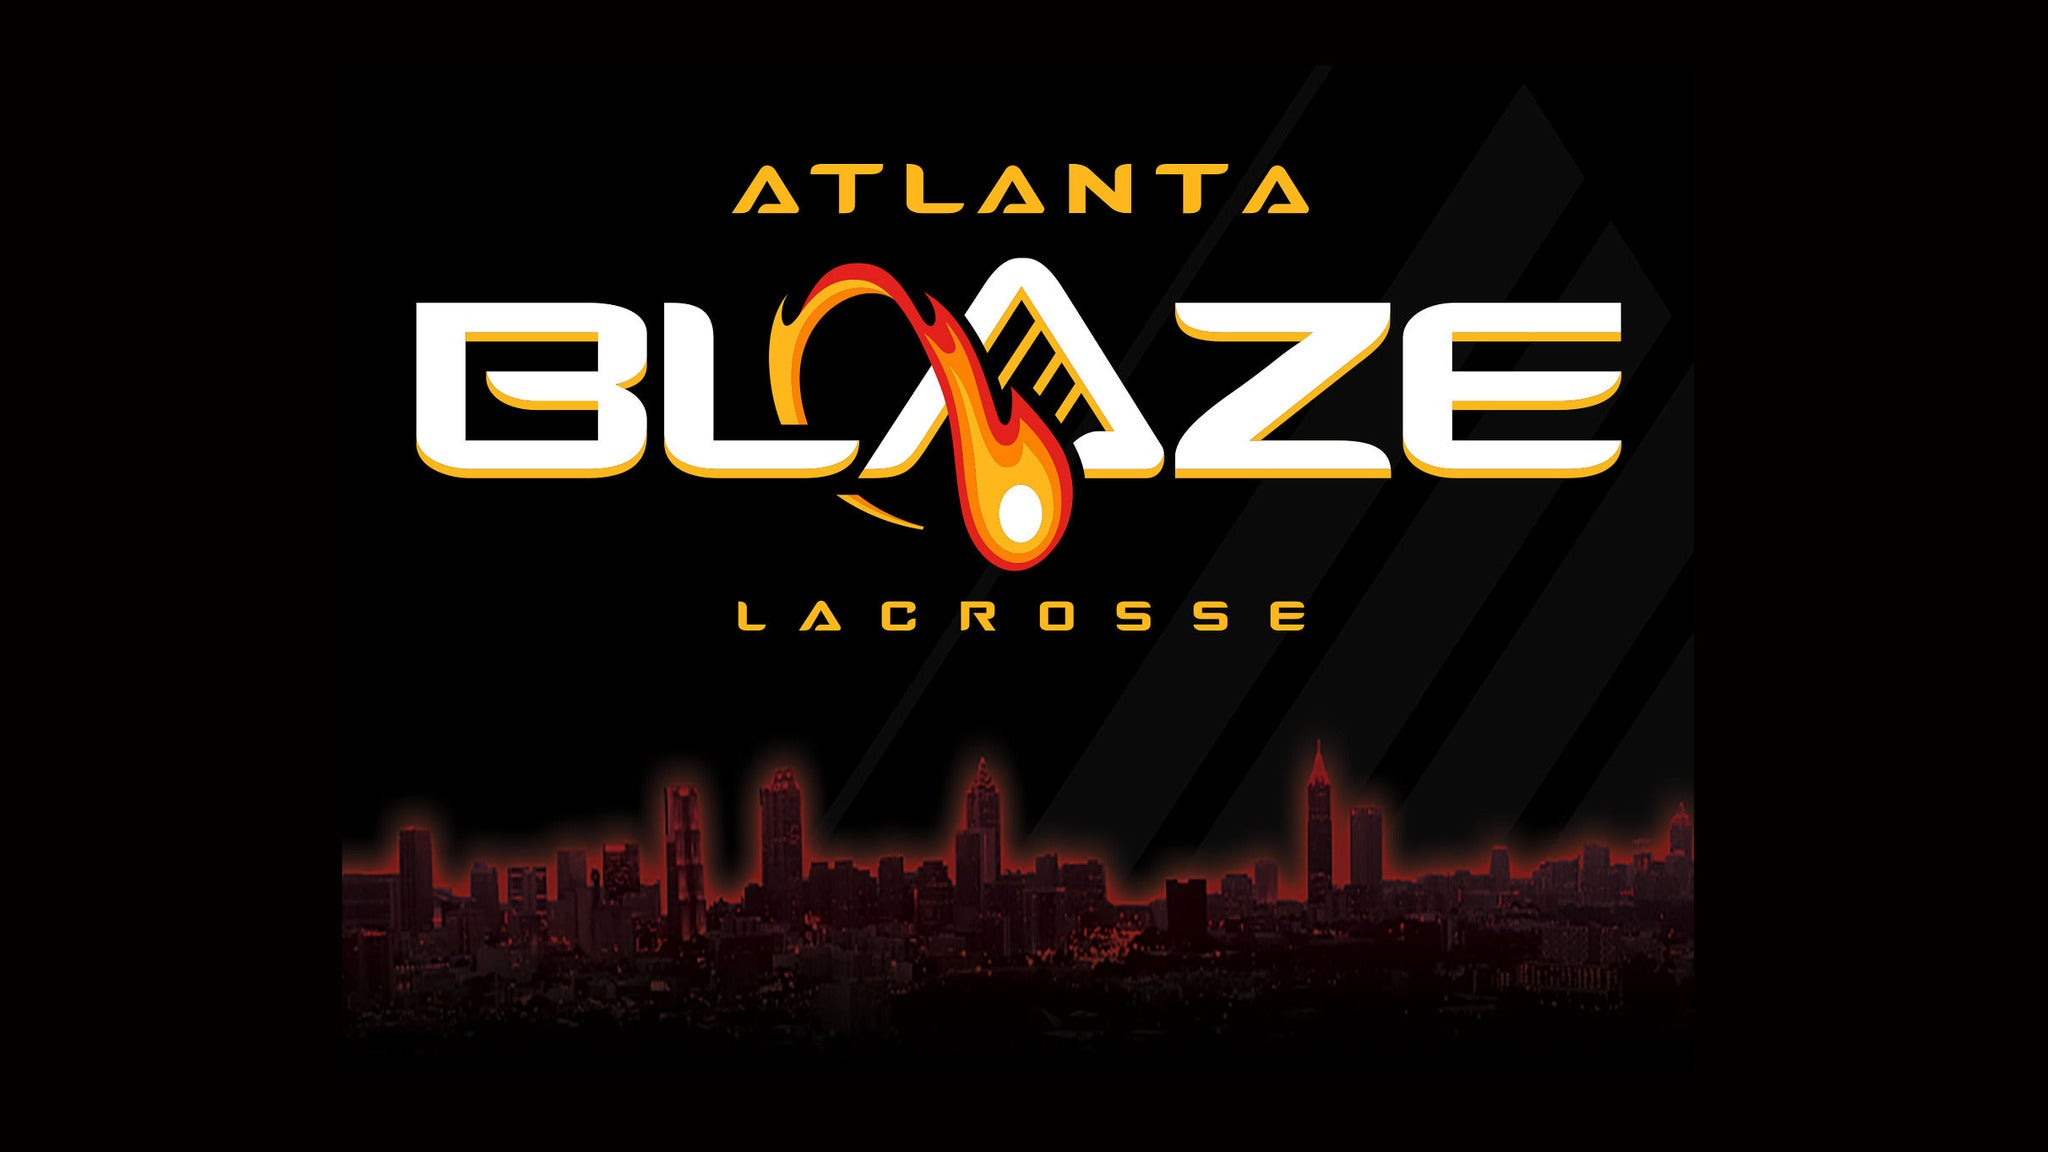 Dallas Rattlers vs Atlanta Blaze at Grady Stadium